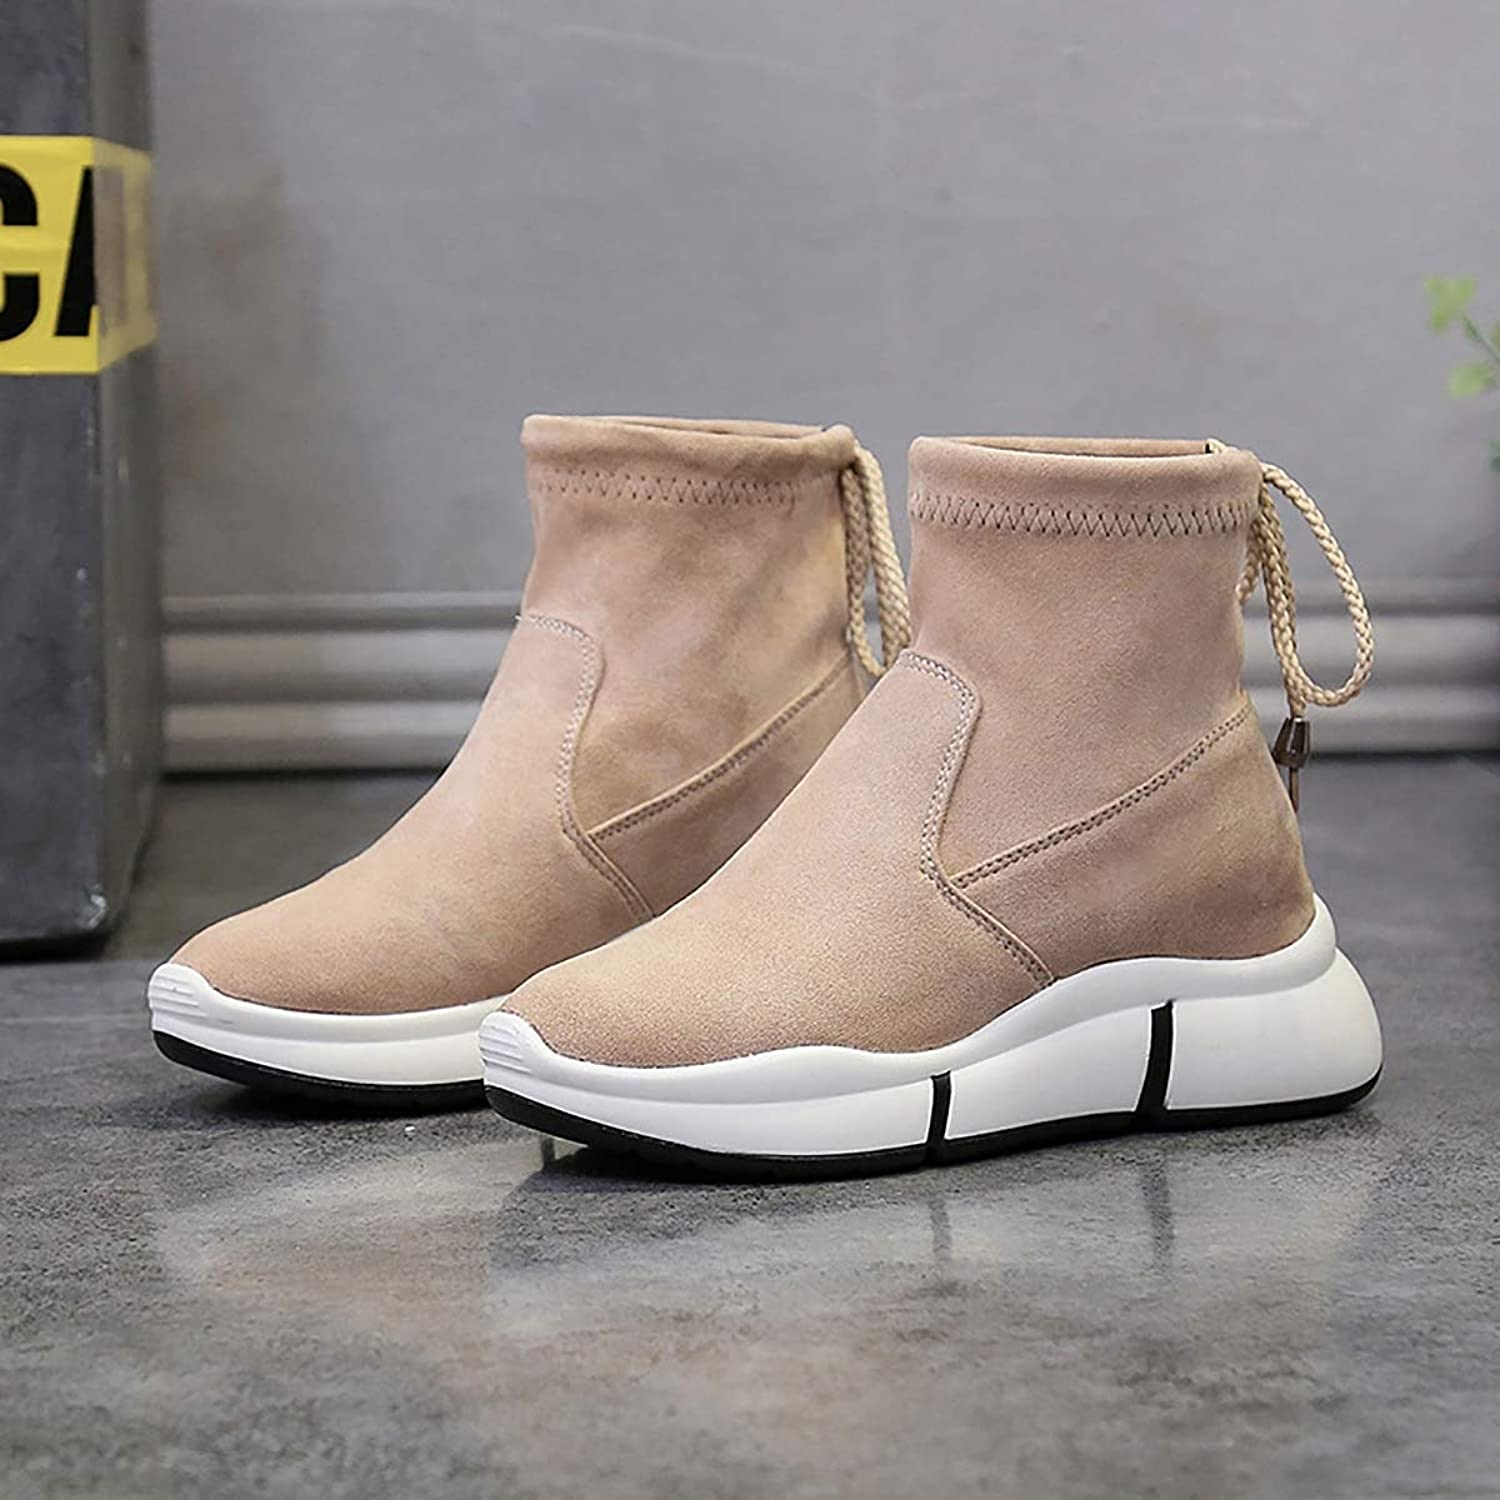 Small Booties Female Winter, Comfortable Trend Ladies Snow Boots,Brown,38